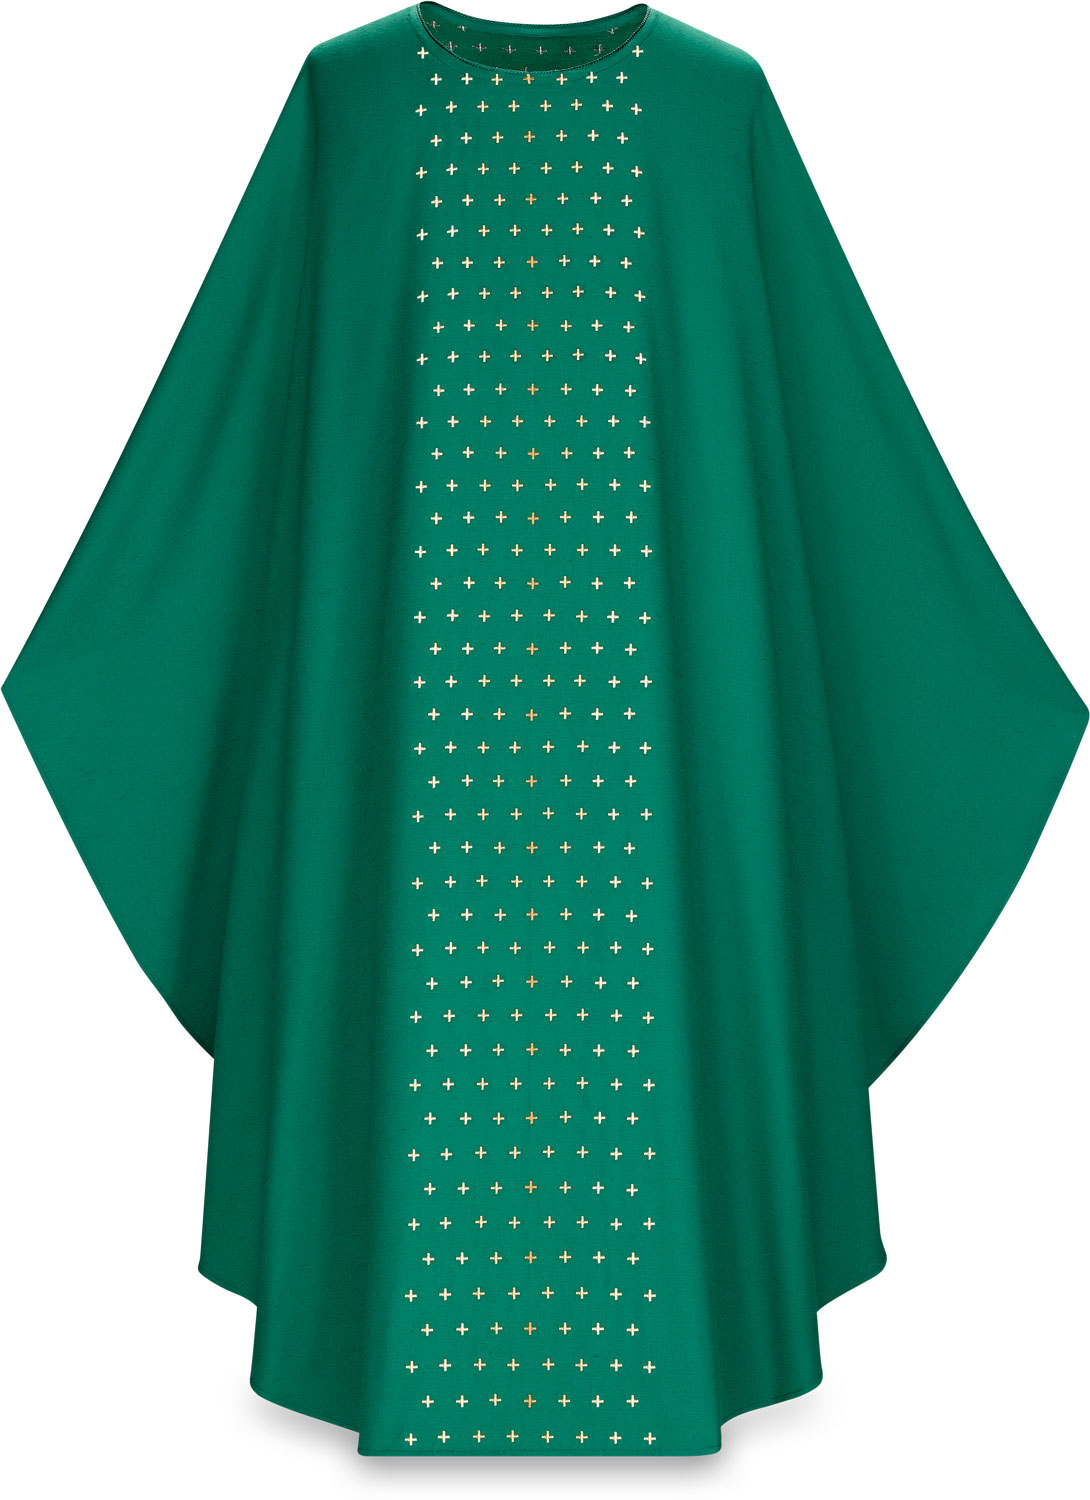 Chasuble | Green | 5231 | Slabbinck